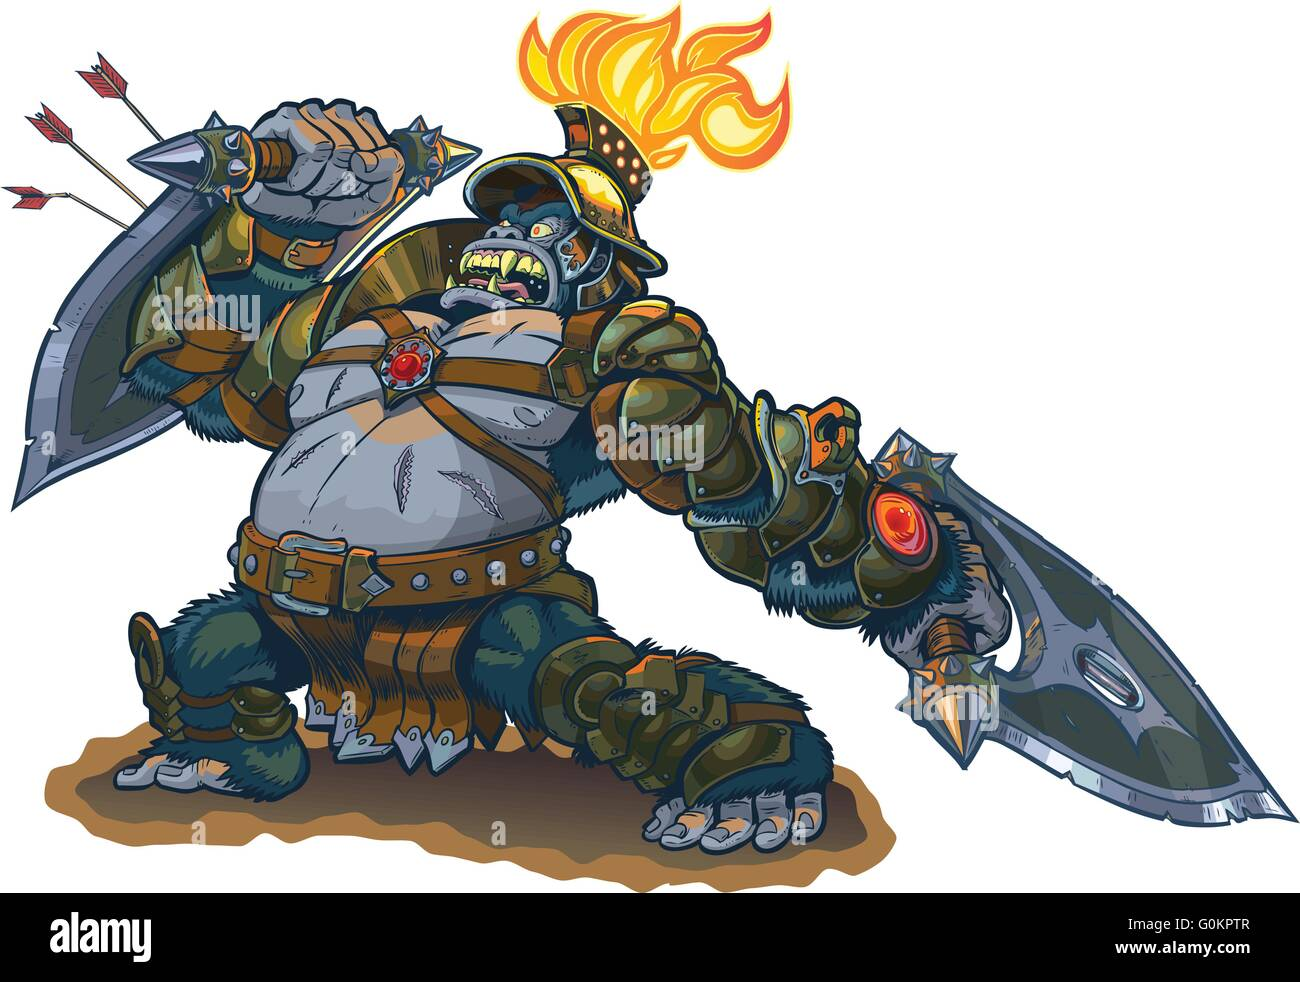 Vector cartoon fantasy illustration of a mighty gorilla warrior in armor with a flaming torch on his helmet. - Stock Vector